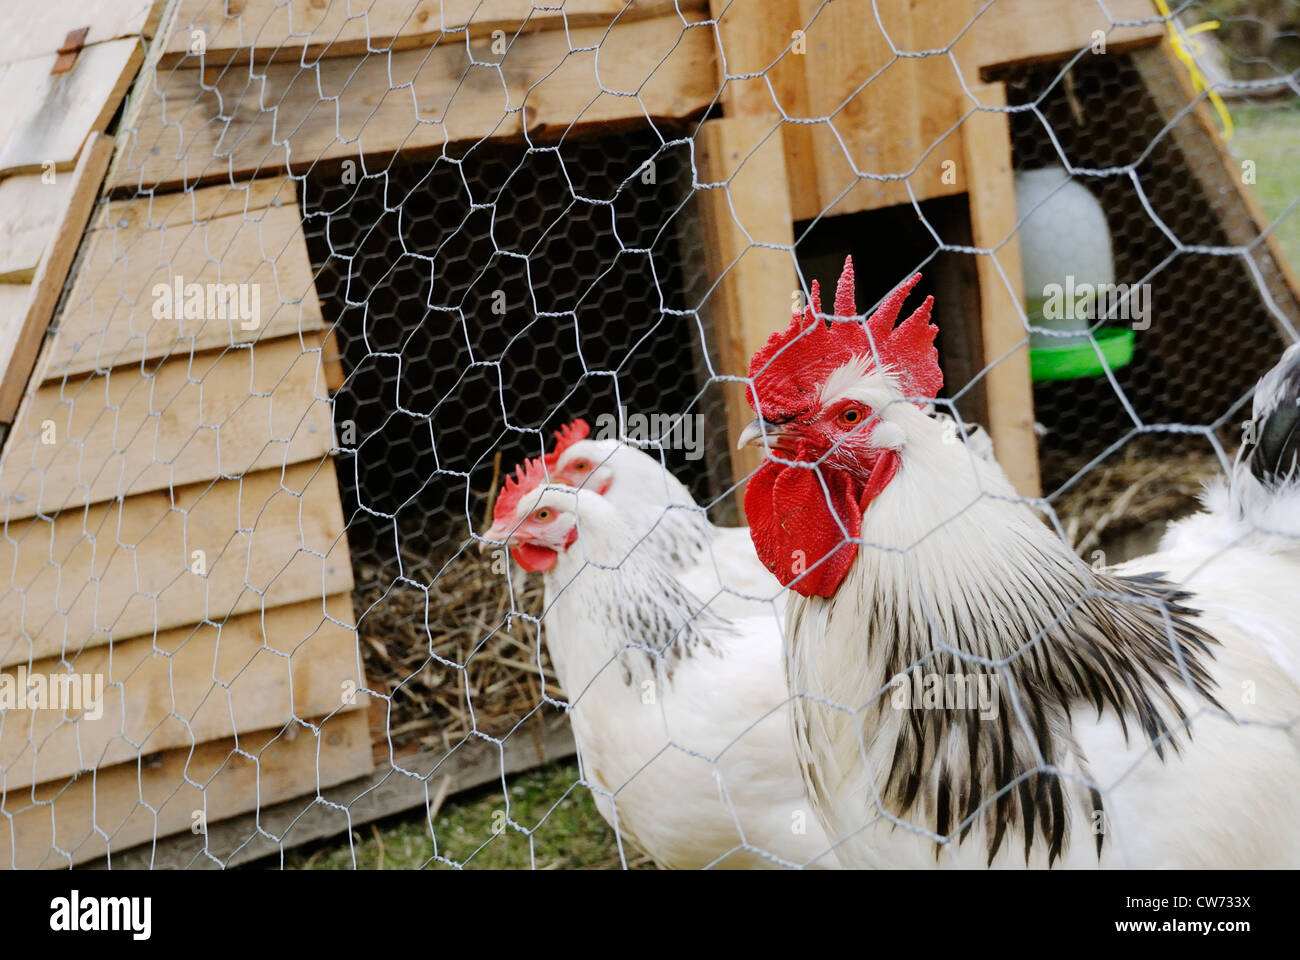 Light Sussex hens and cockerel in a moveable hen house, Wales. - Stock Image